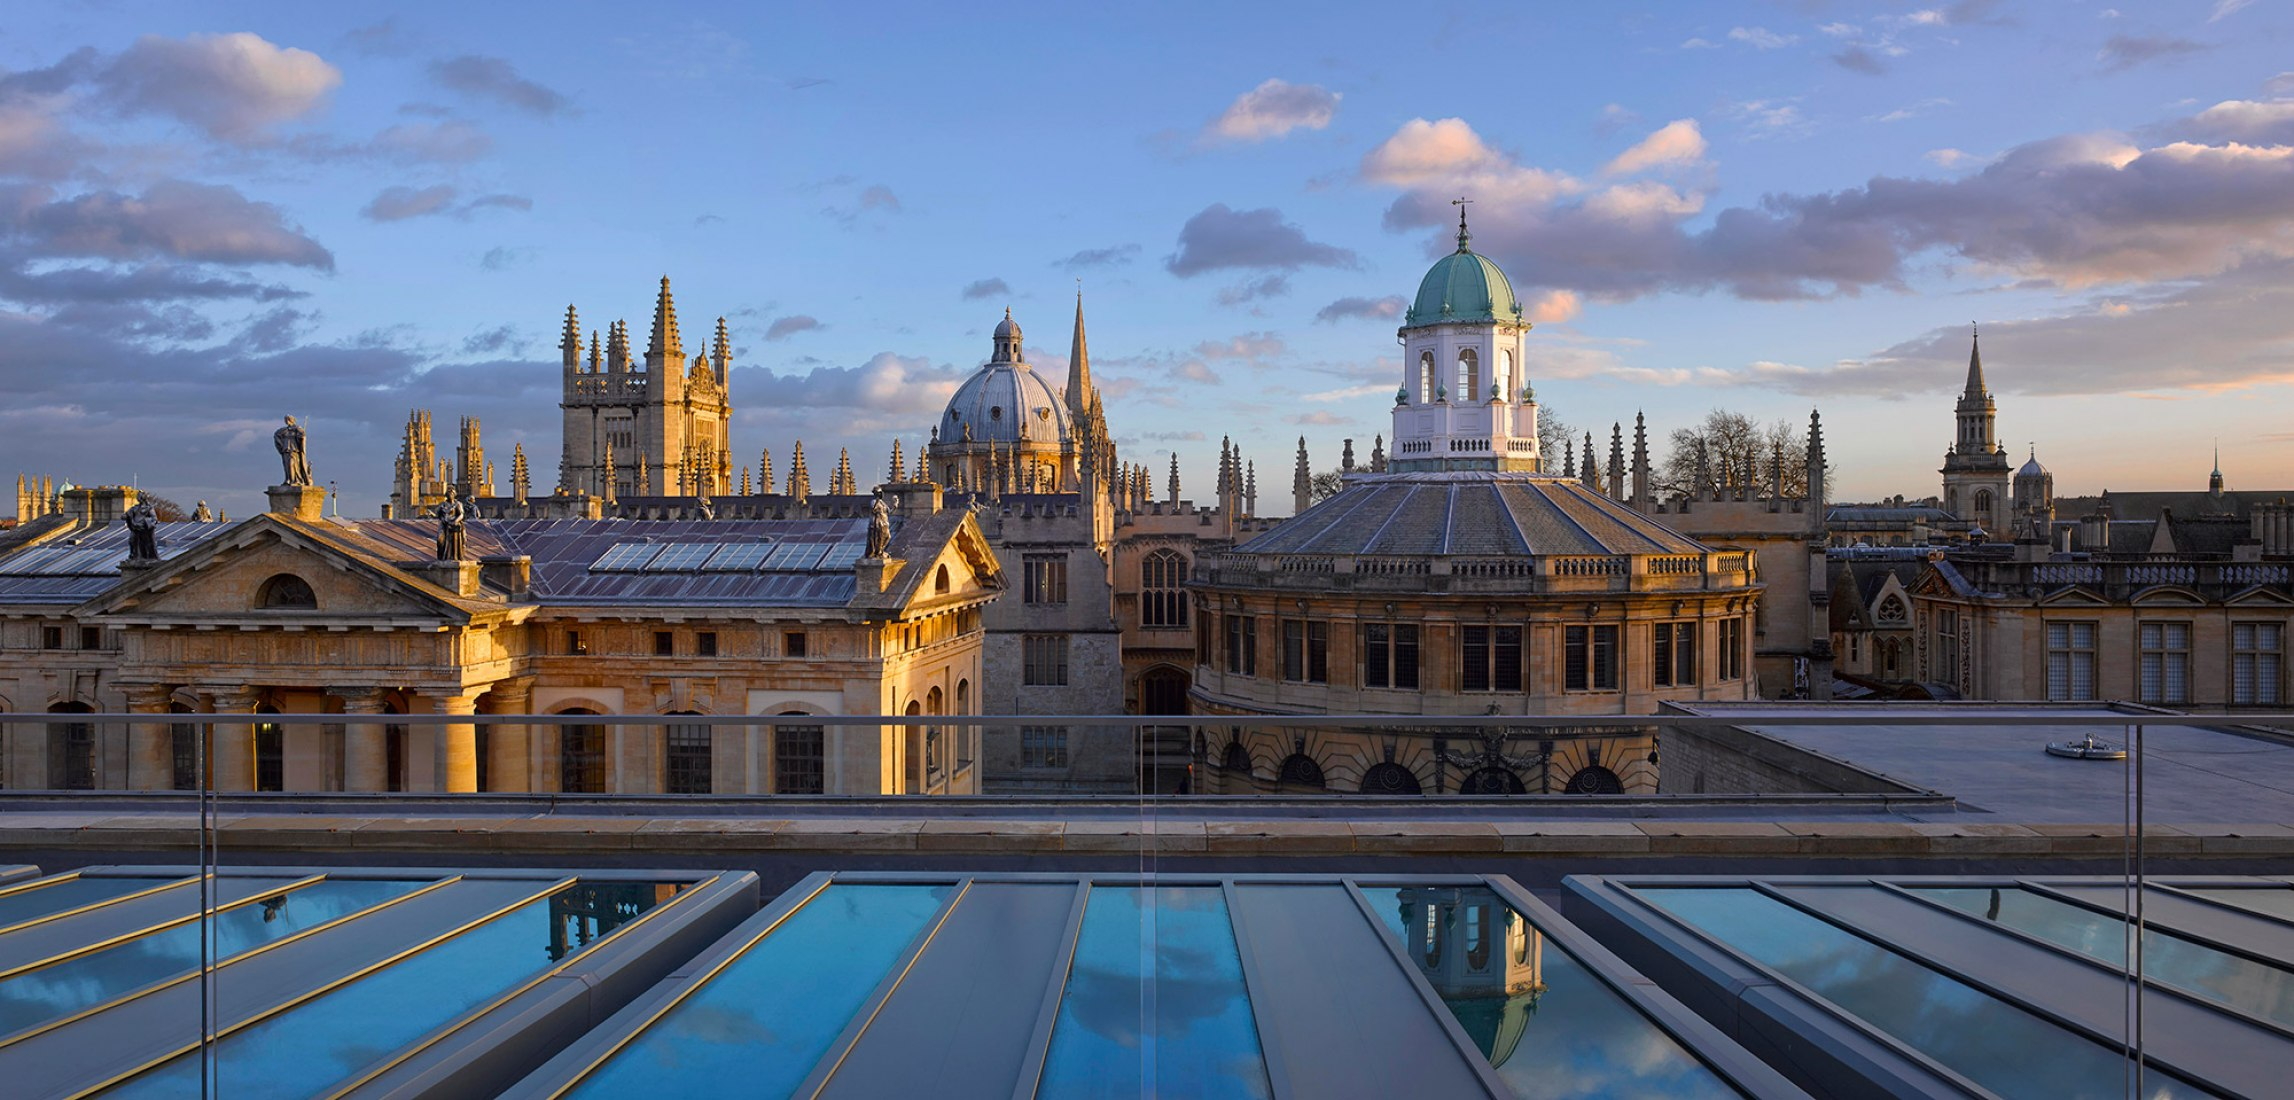 View of Oxford from the roof © Will Pryce.